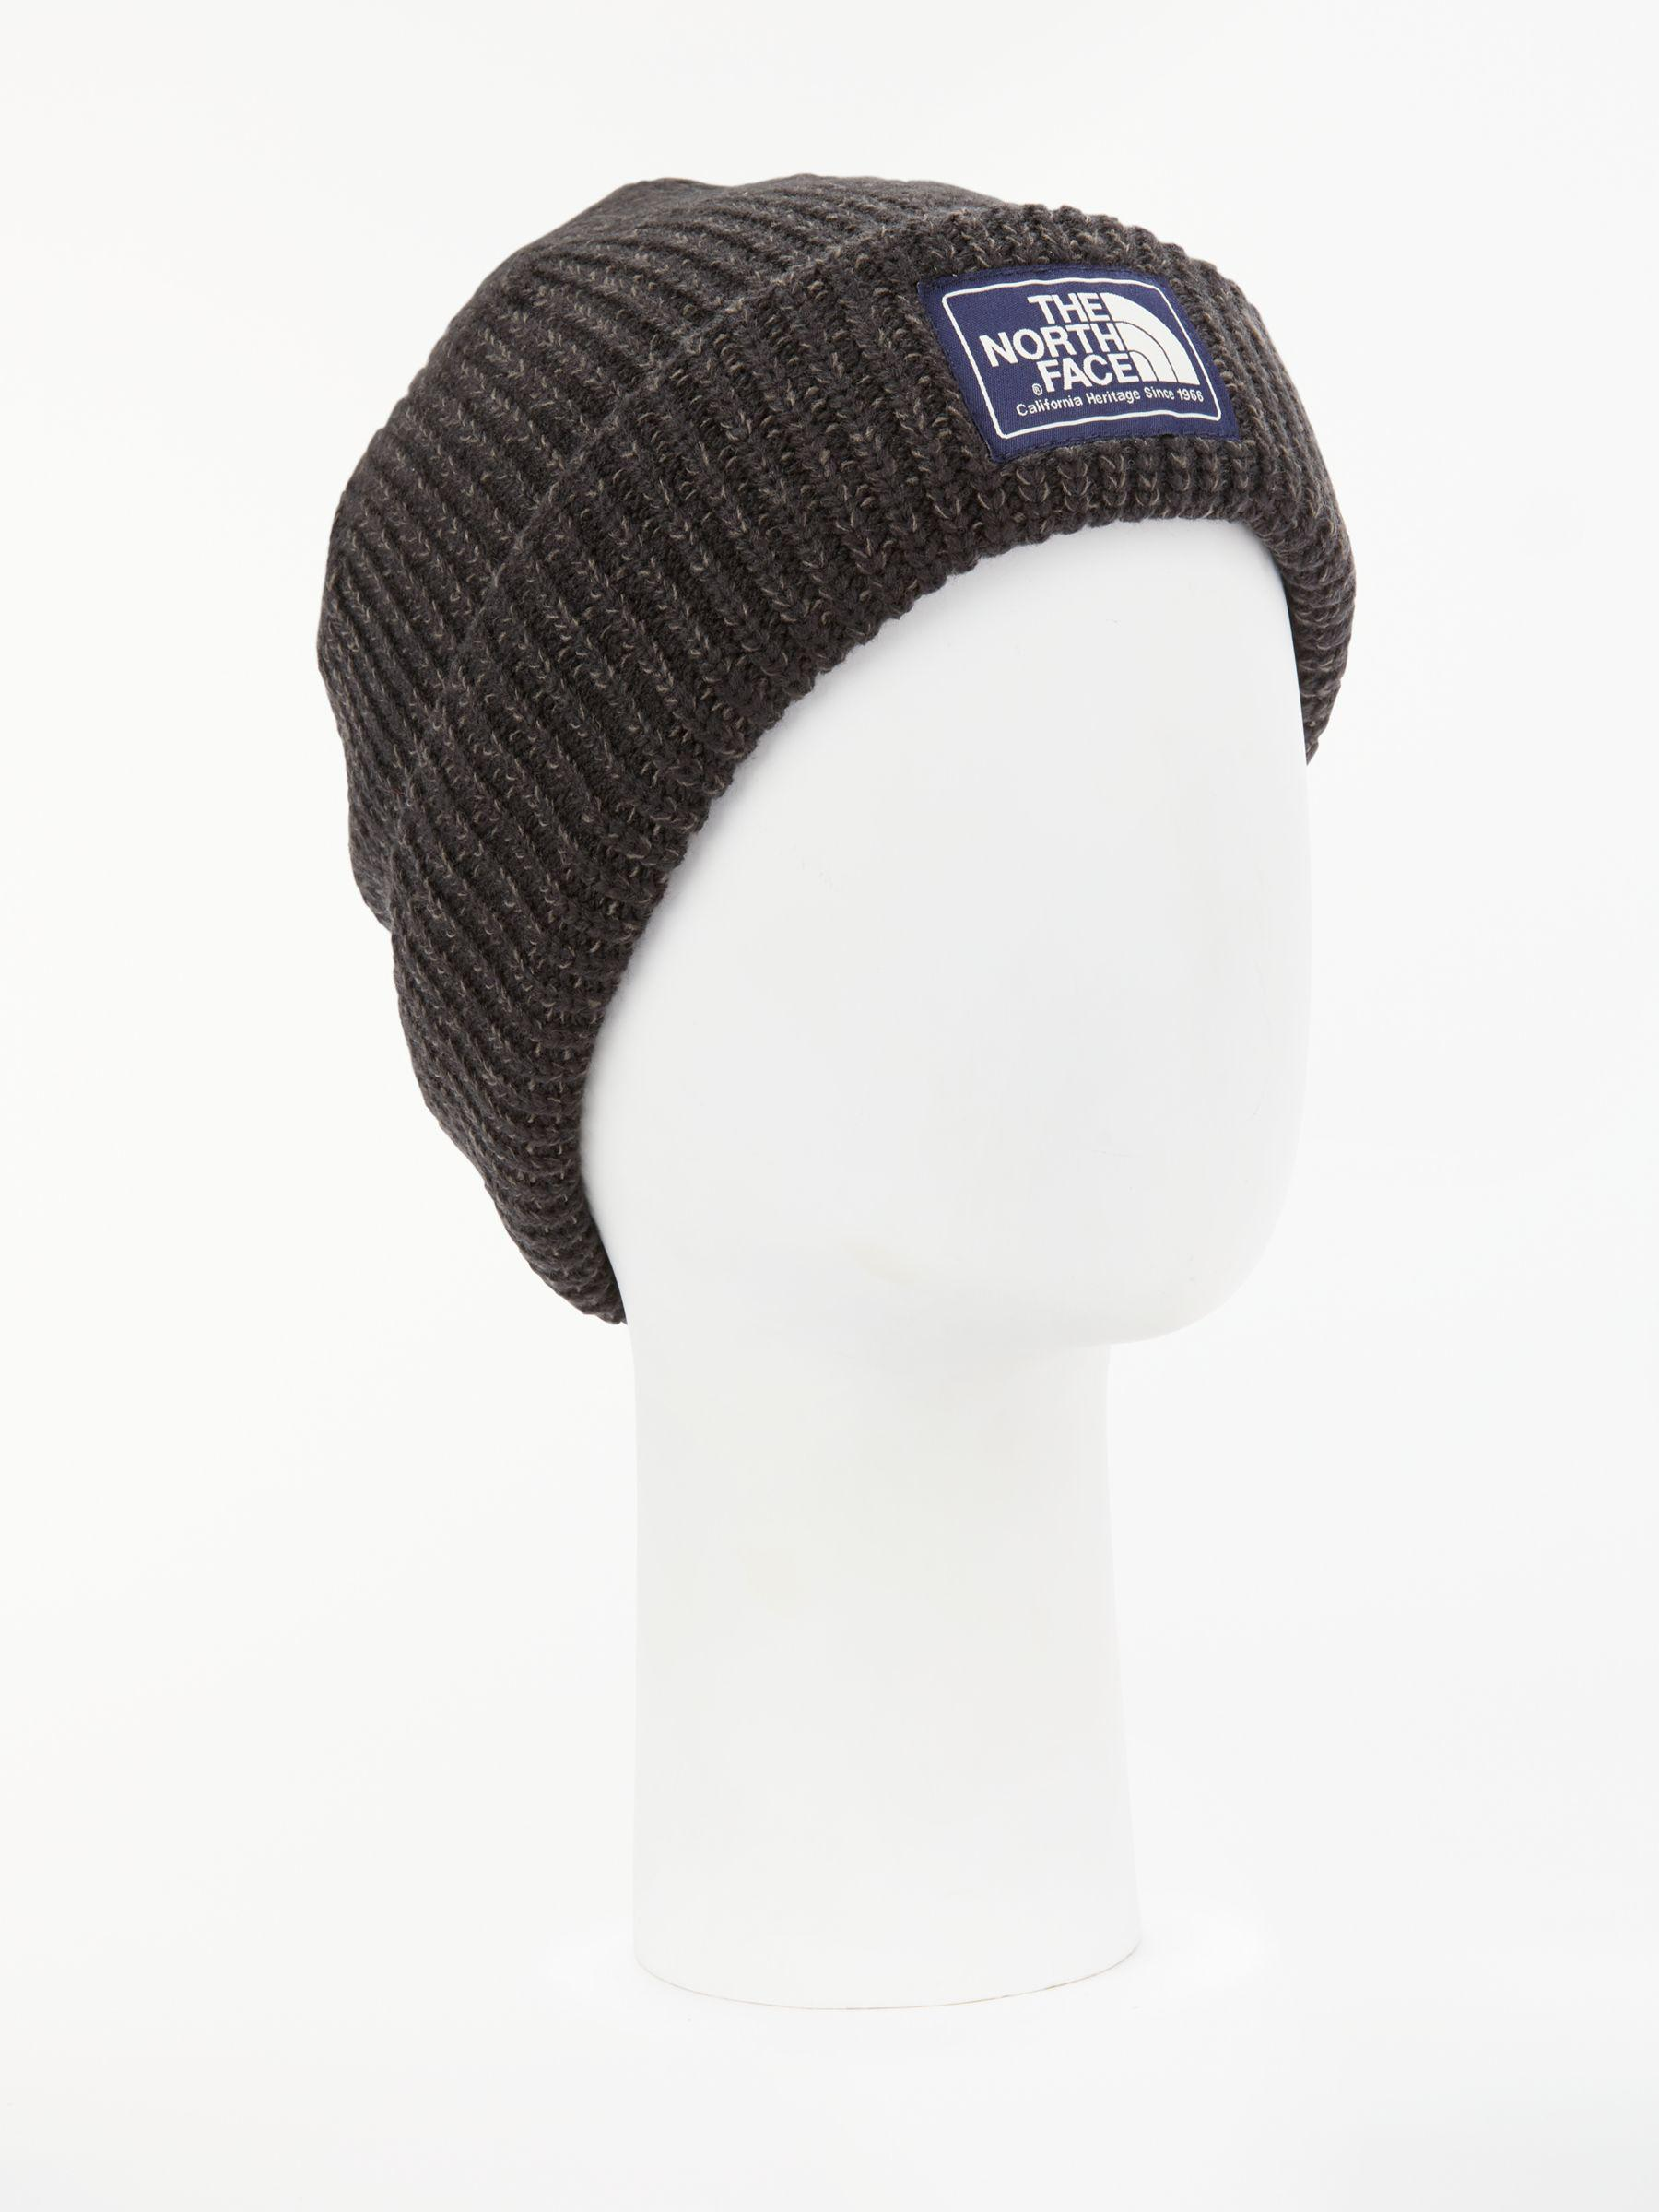 fd5c85e6d40e The North Face Salty Dog Beanie in Black - Lyst